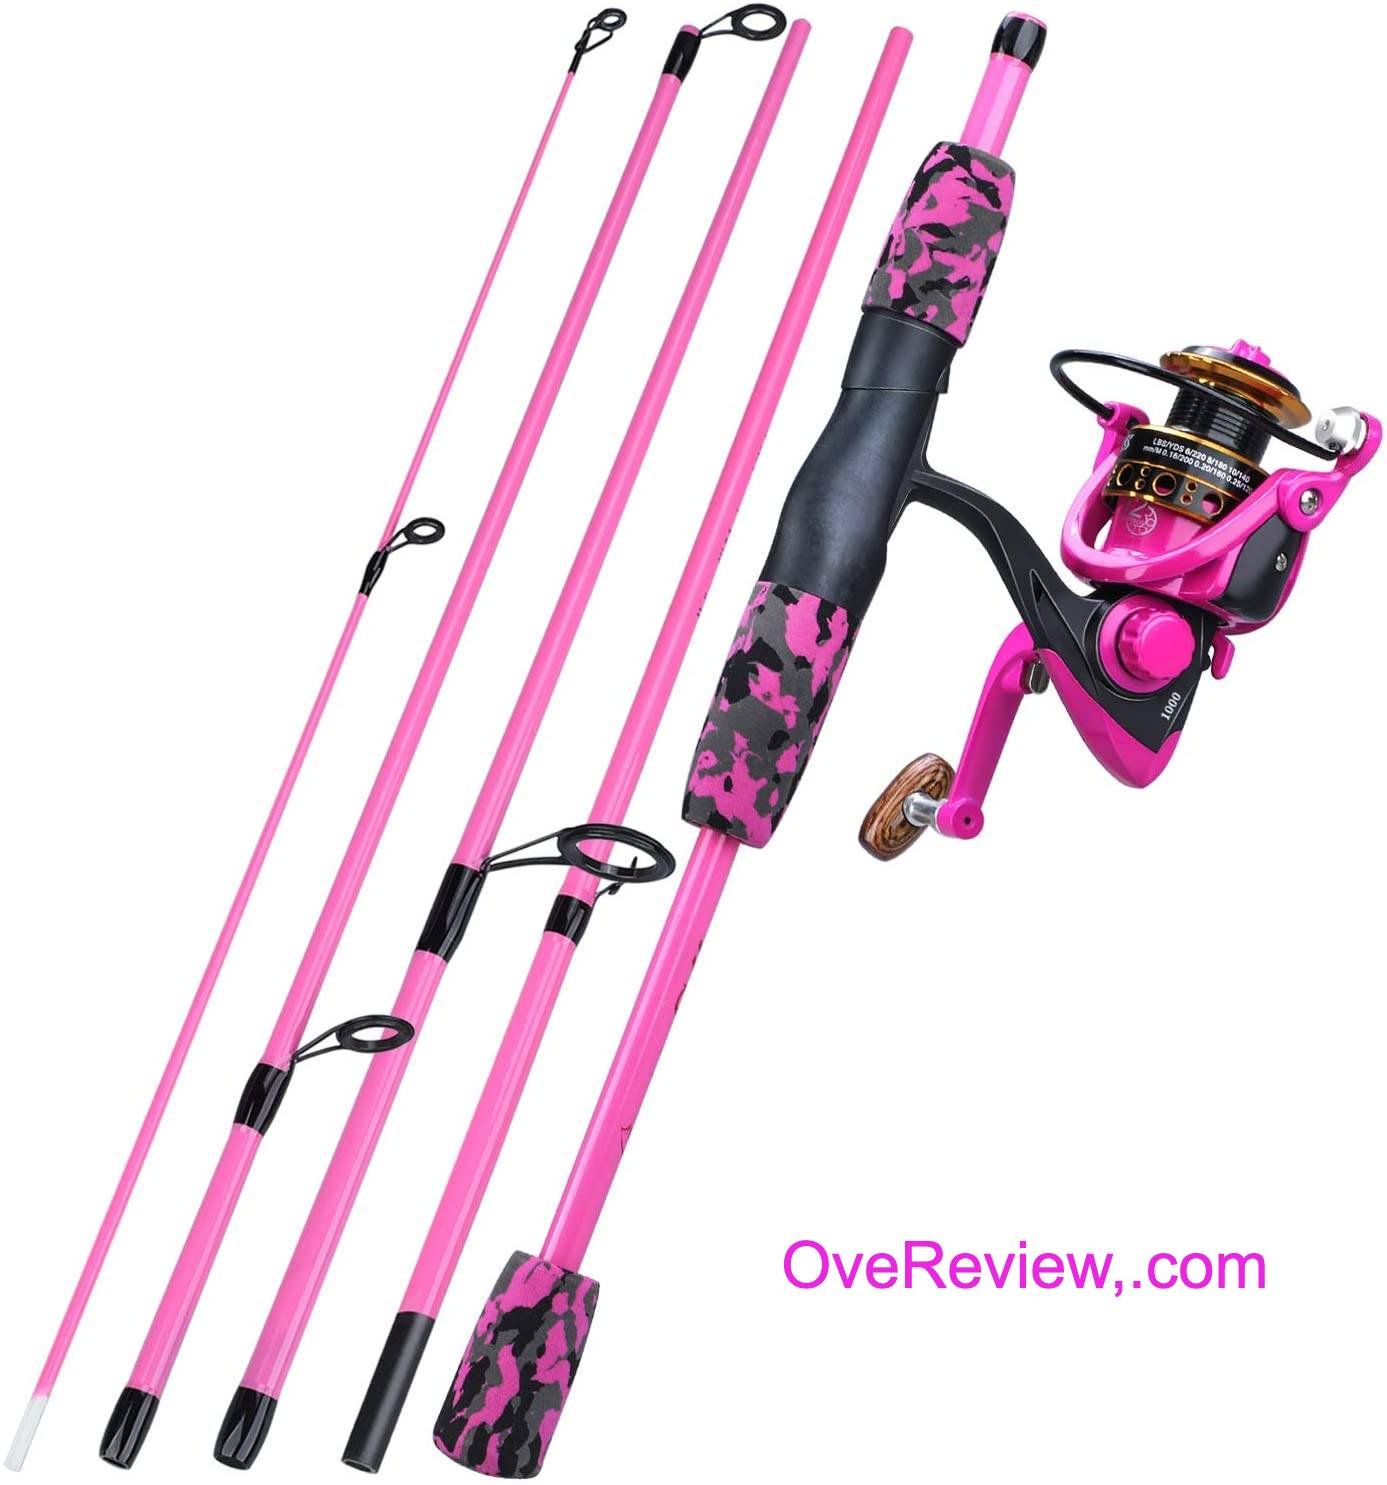 Top 12 Best Fishing Poles of 2021 - {Buyer's Guide} 4